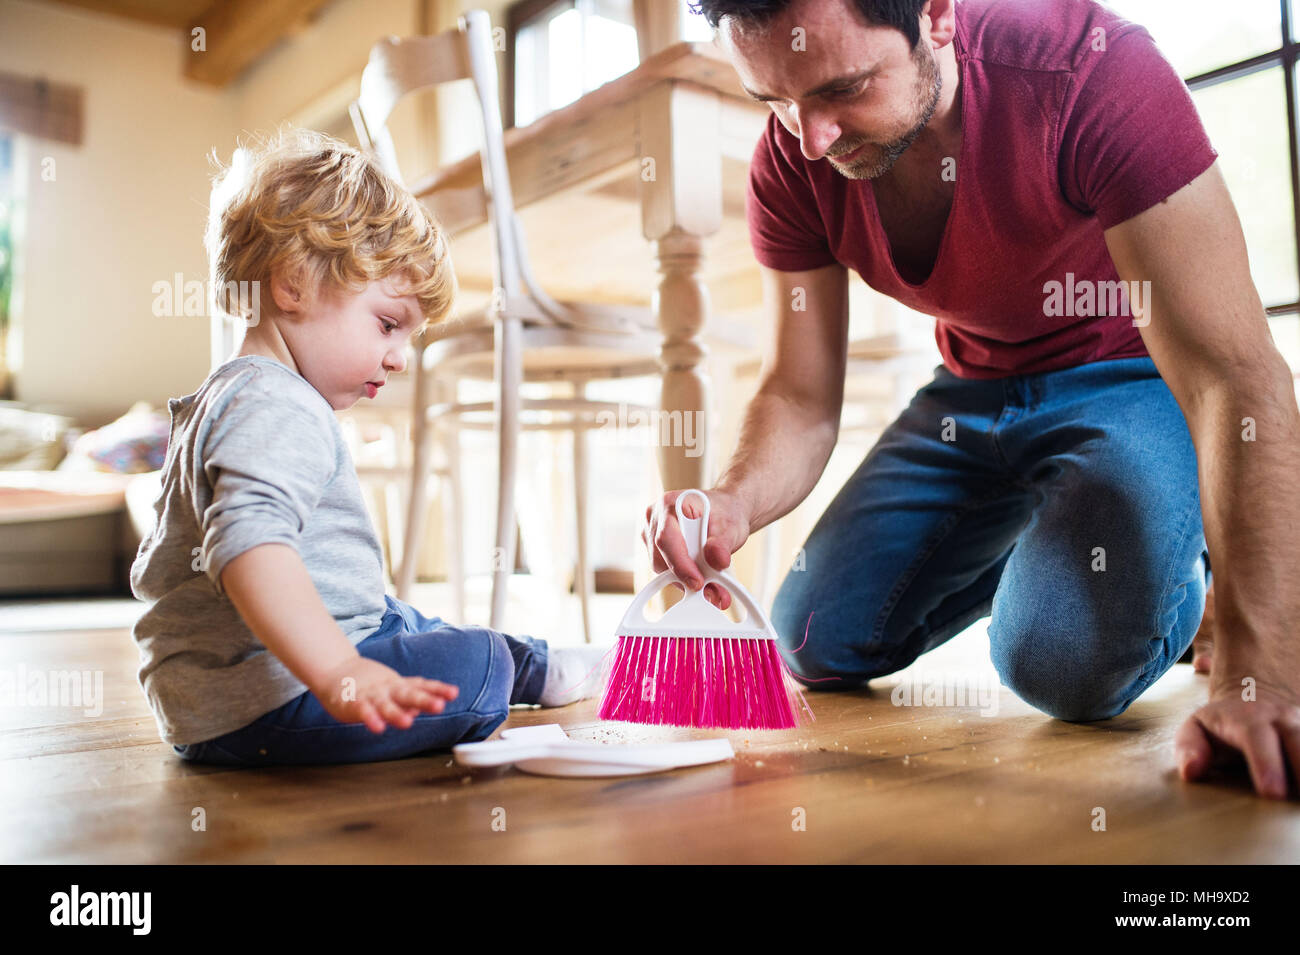 Handsome father and toddler boy with brush and dustpan. - Stock Image